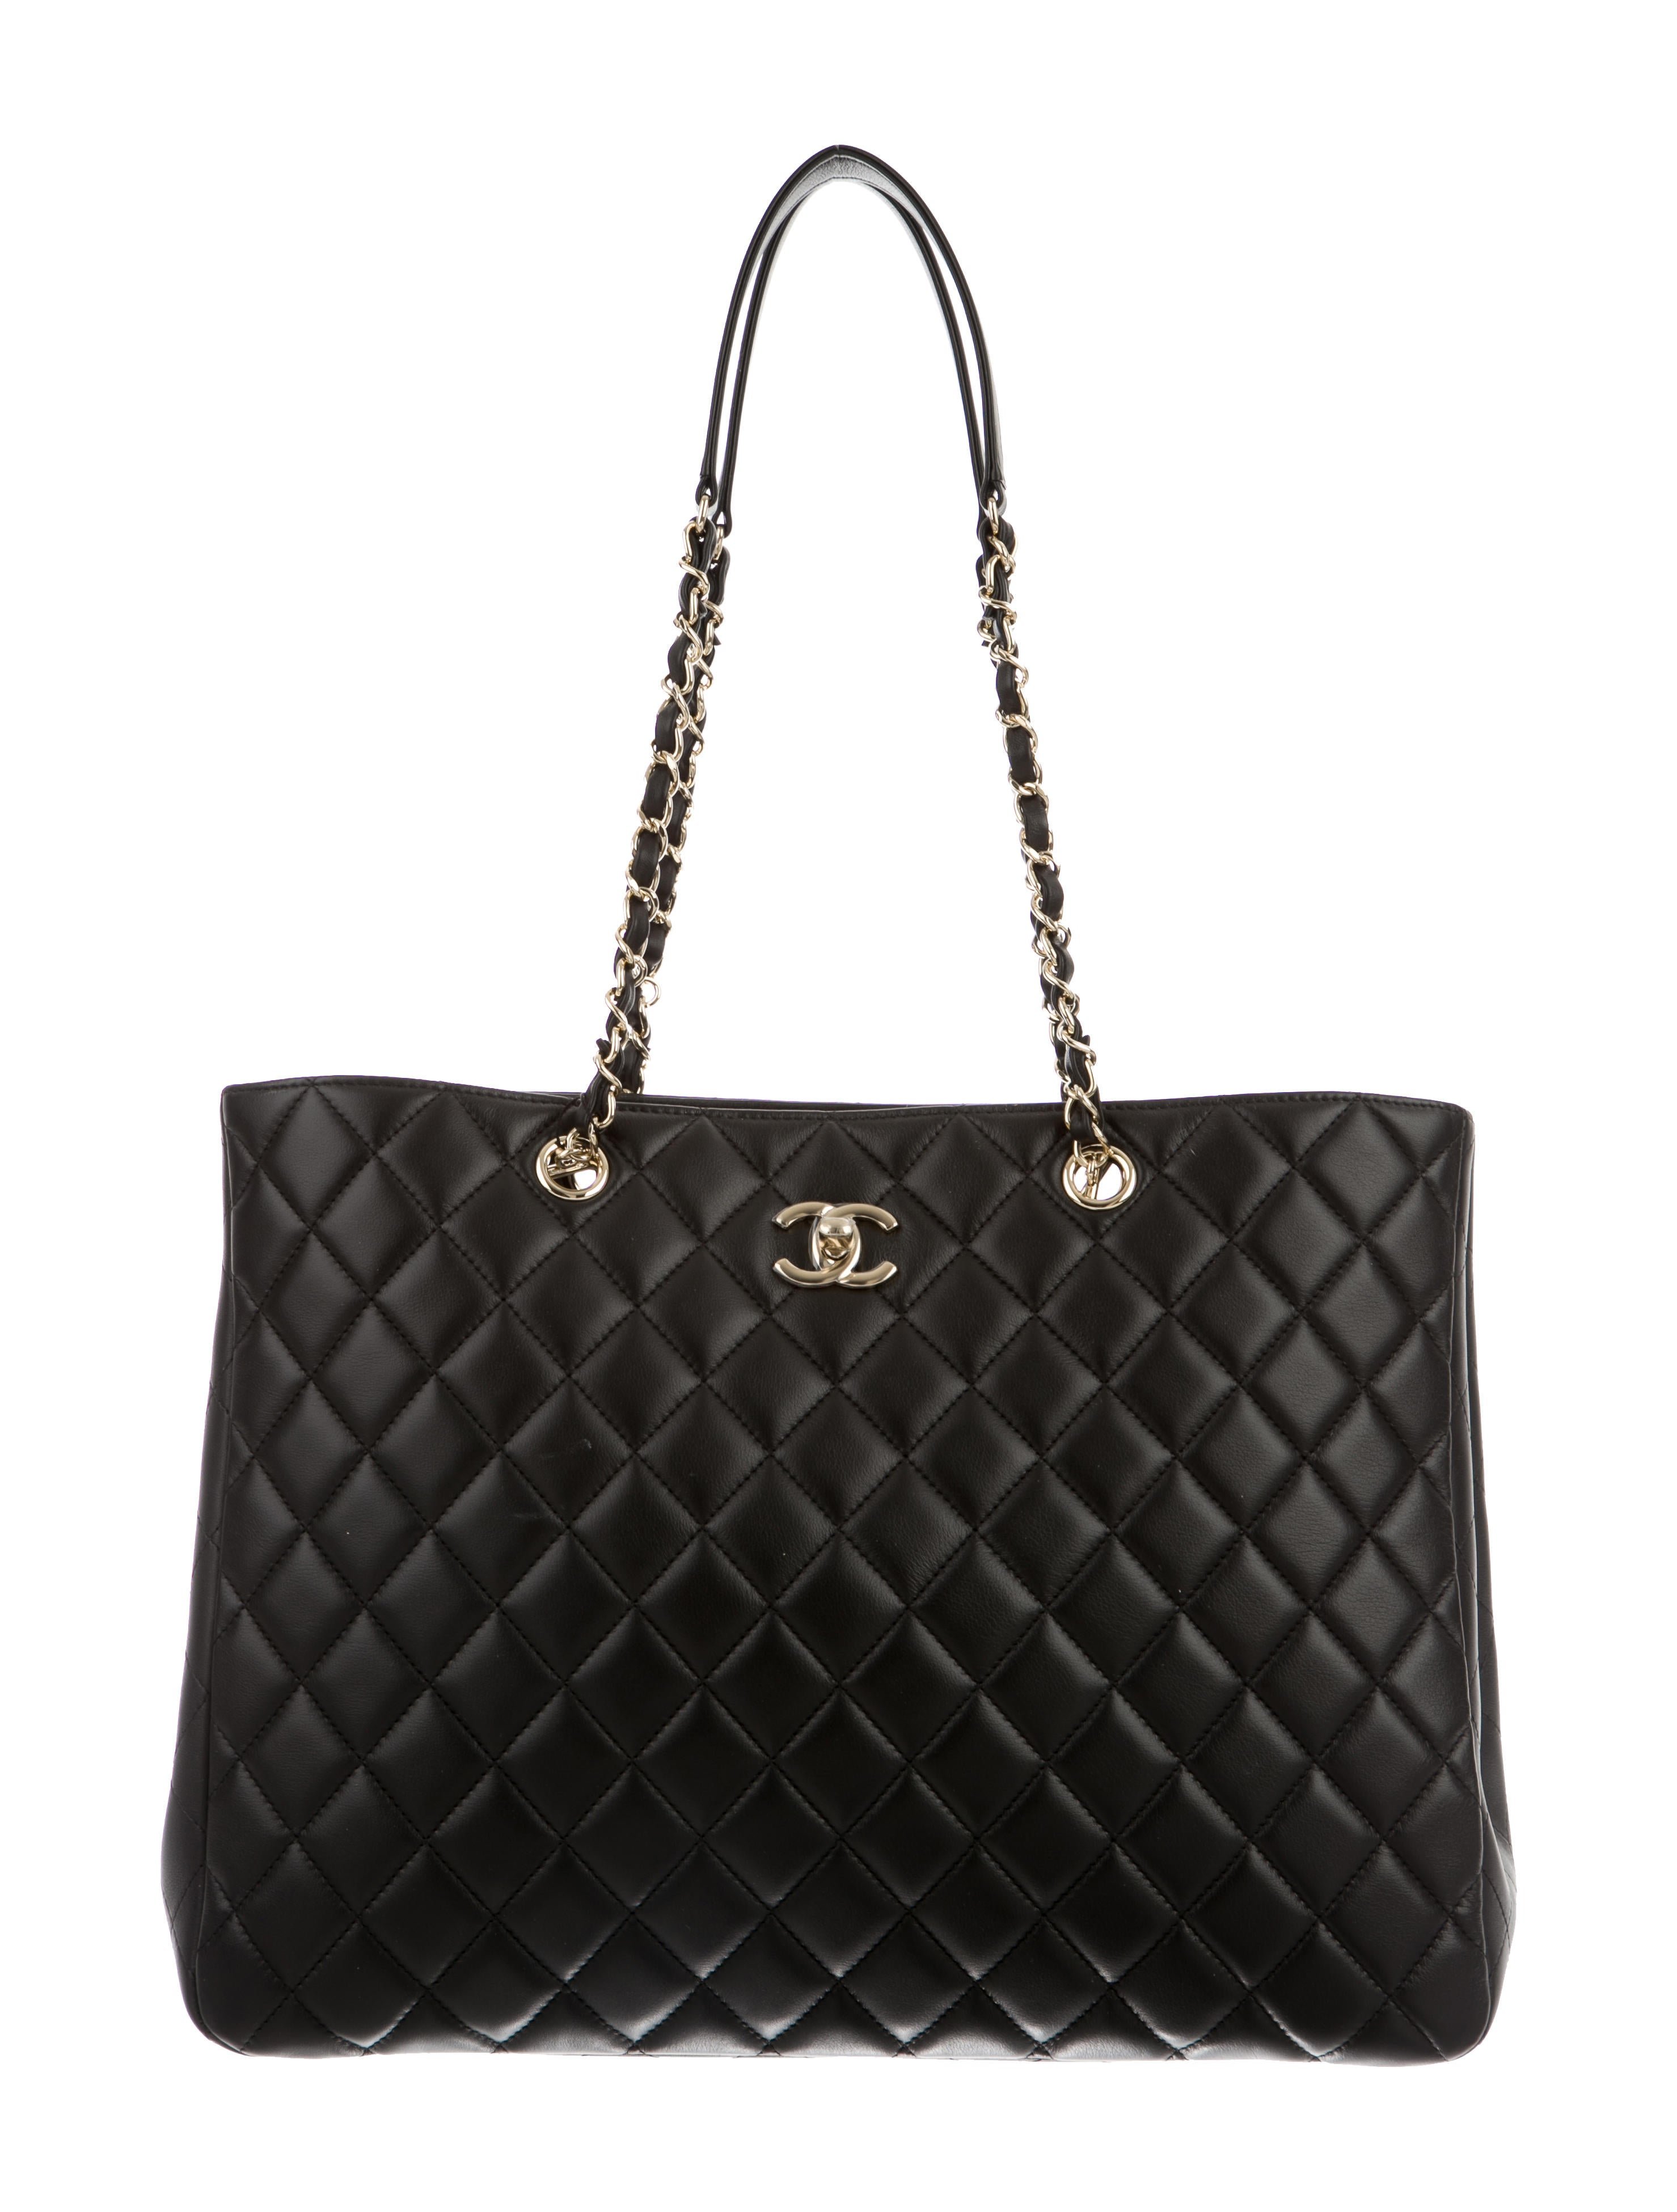 a6eed7e8e0ac Chanel Timeless Classic Tote Price | Stanford Center for Opportunity ...